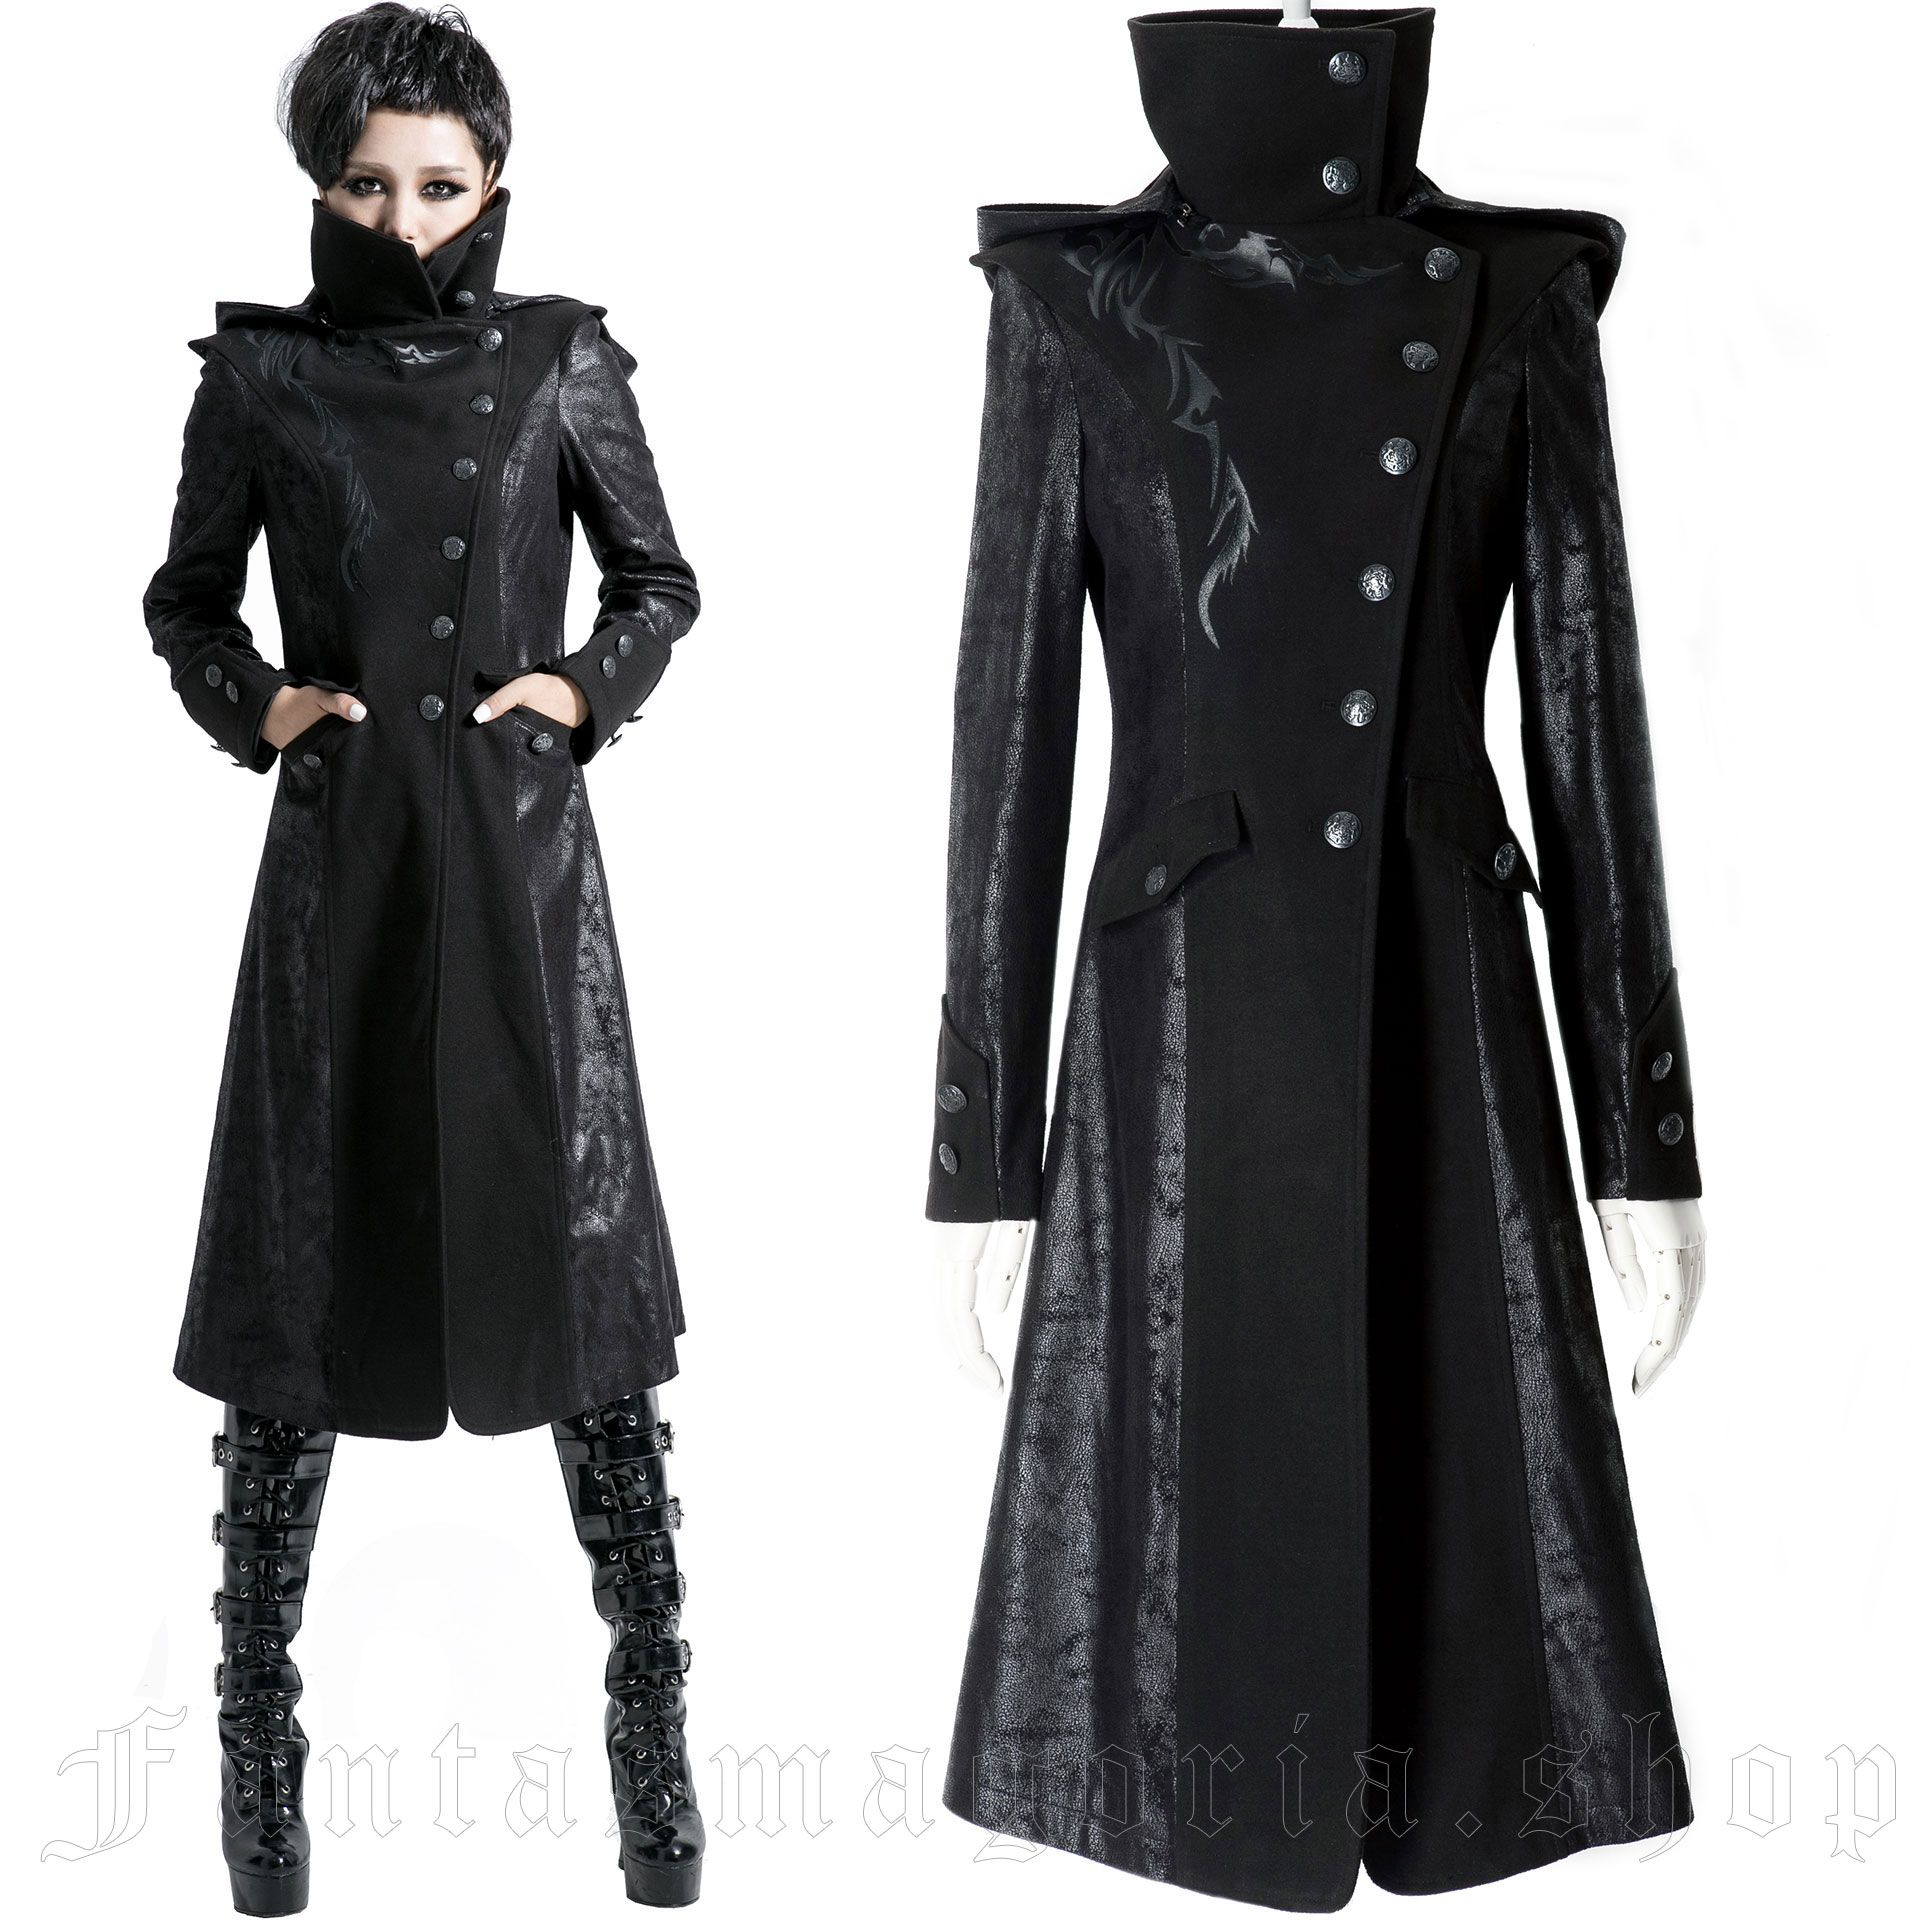 women's Black Dragon Coat by PUNK RAVE brand, code: Y-420/Female